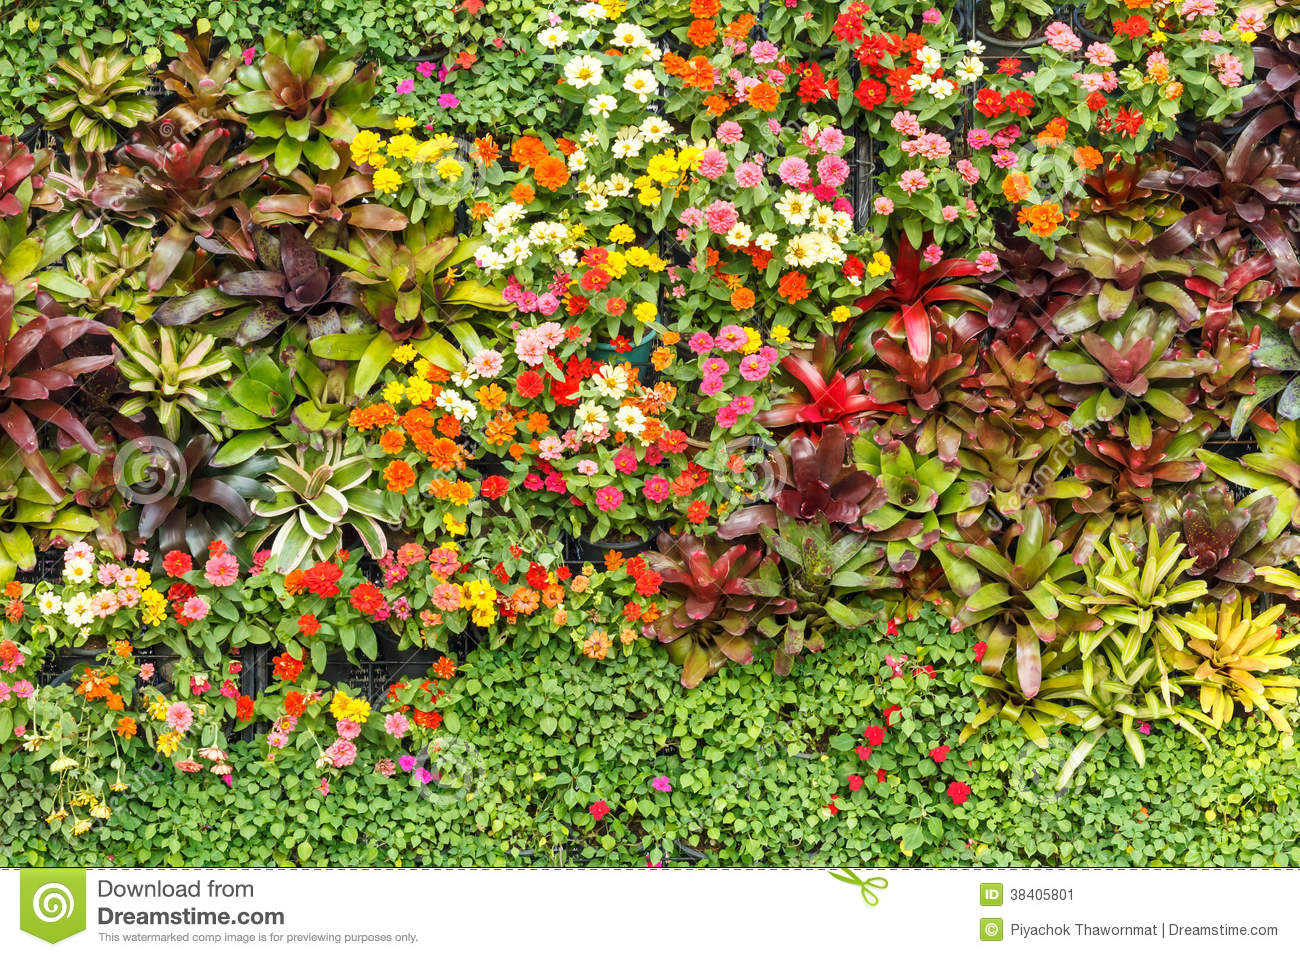 Vertical garden with various tropical plants and flower growing in a